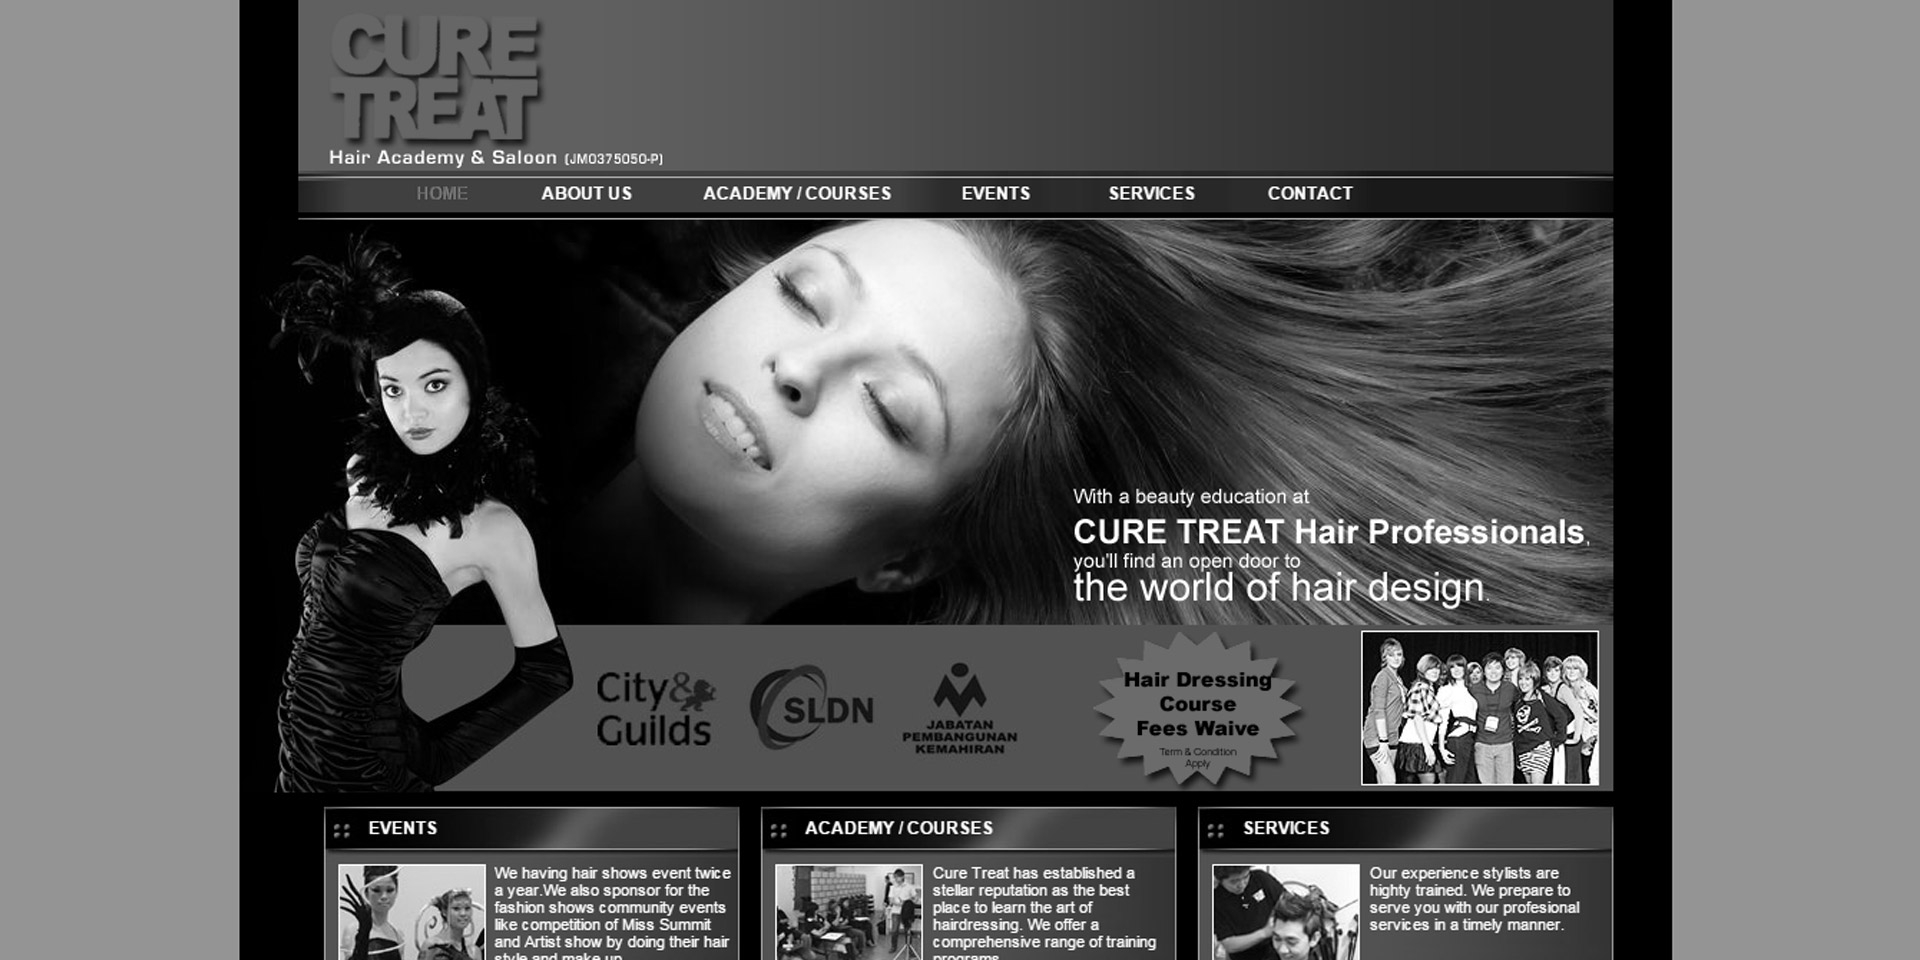 Cure Treat Hair Academy & Saloon